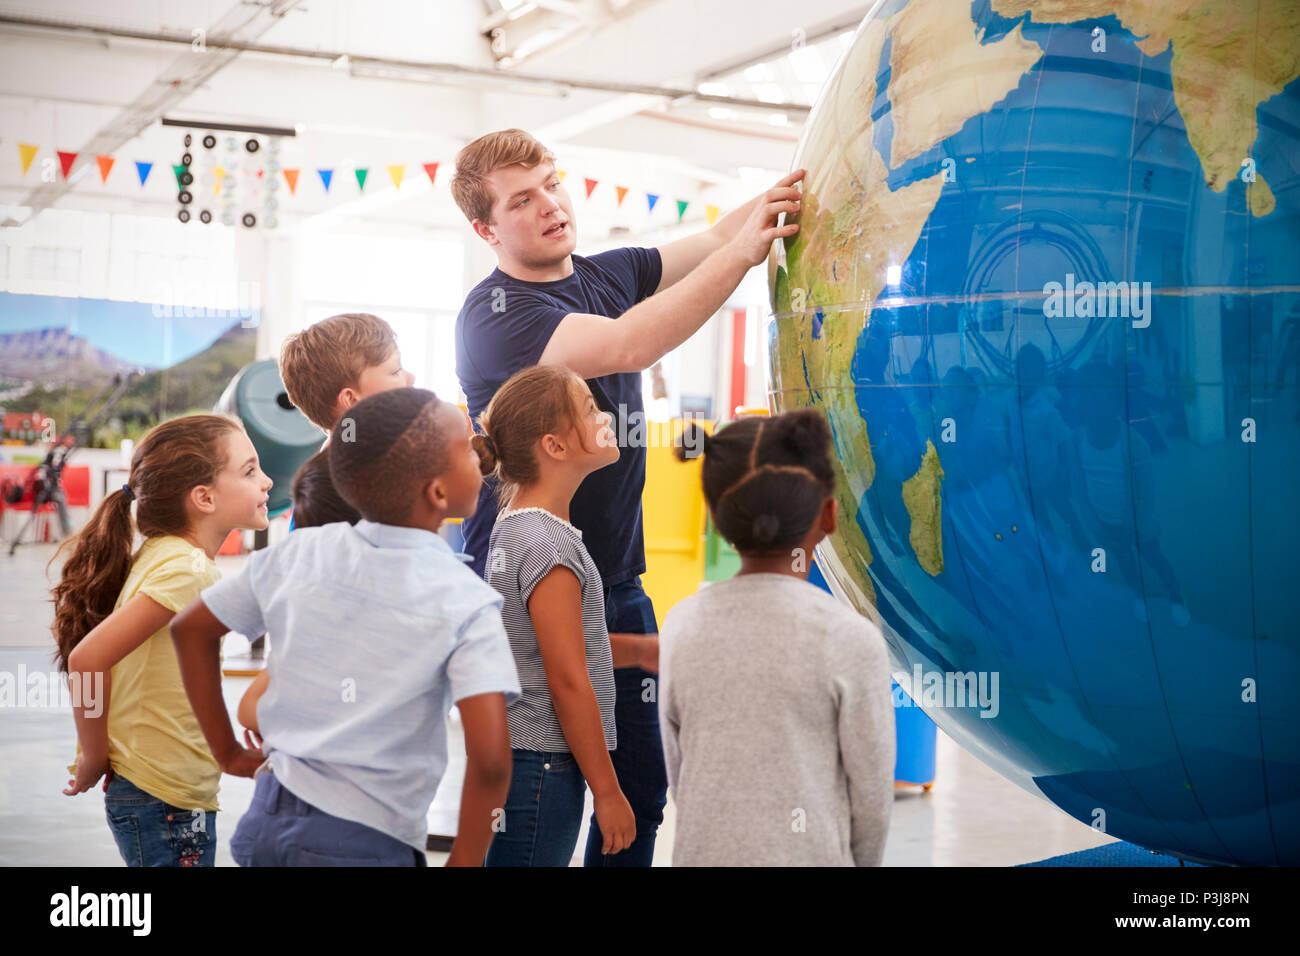 Kids watch presentation with giant globe at a science centre - Stock Image